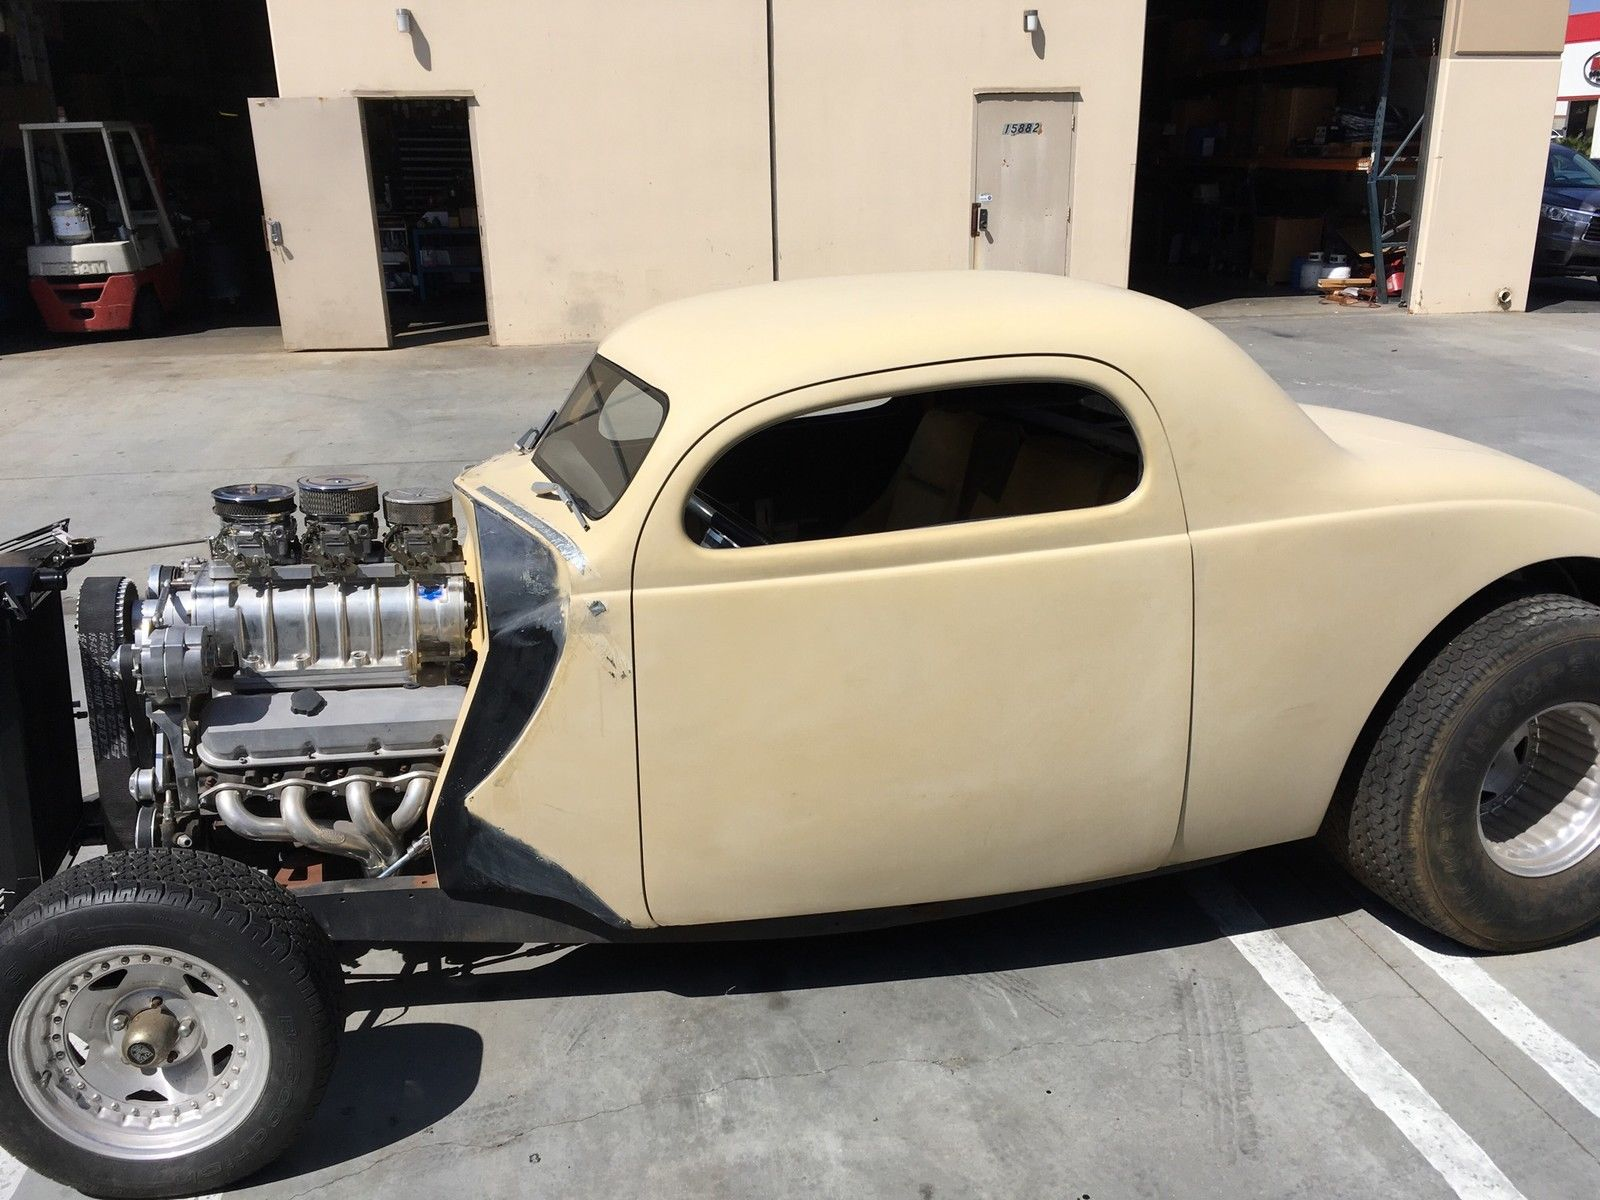 1937 Dodge Coupe Street Rod Project Car For Sale: 1937 Ford Monitti Pro Street Coupe Project Car For Sale